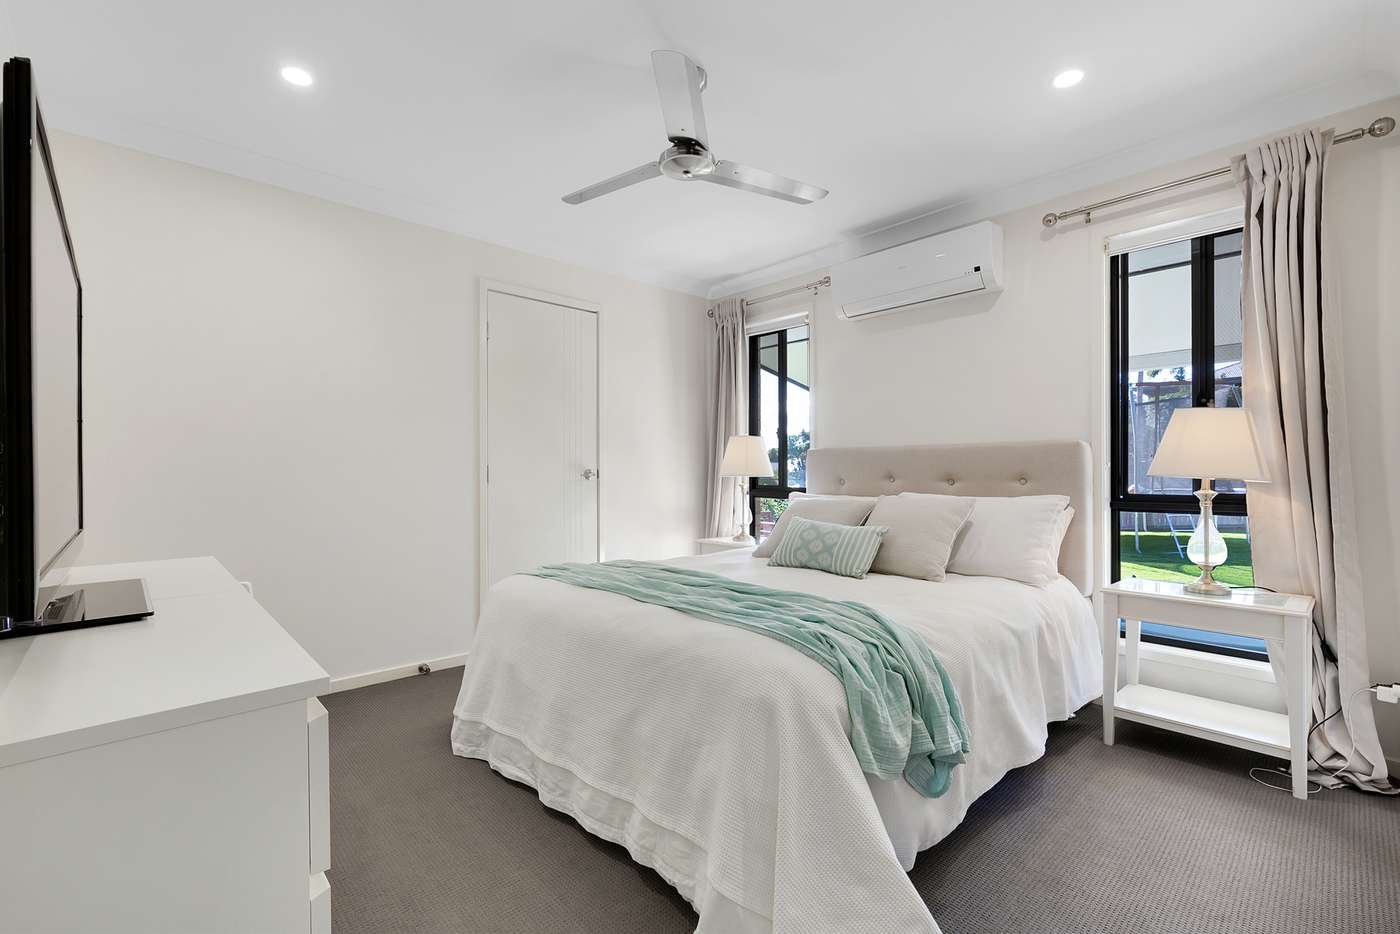 Fifth view of Homely house listing, 4 Kite Close, Moggill QLD 4070